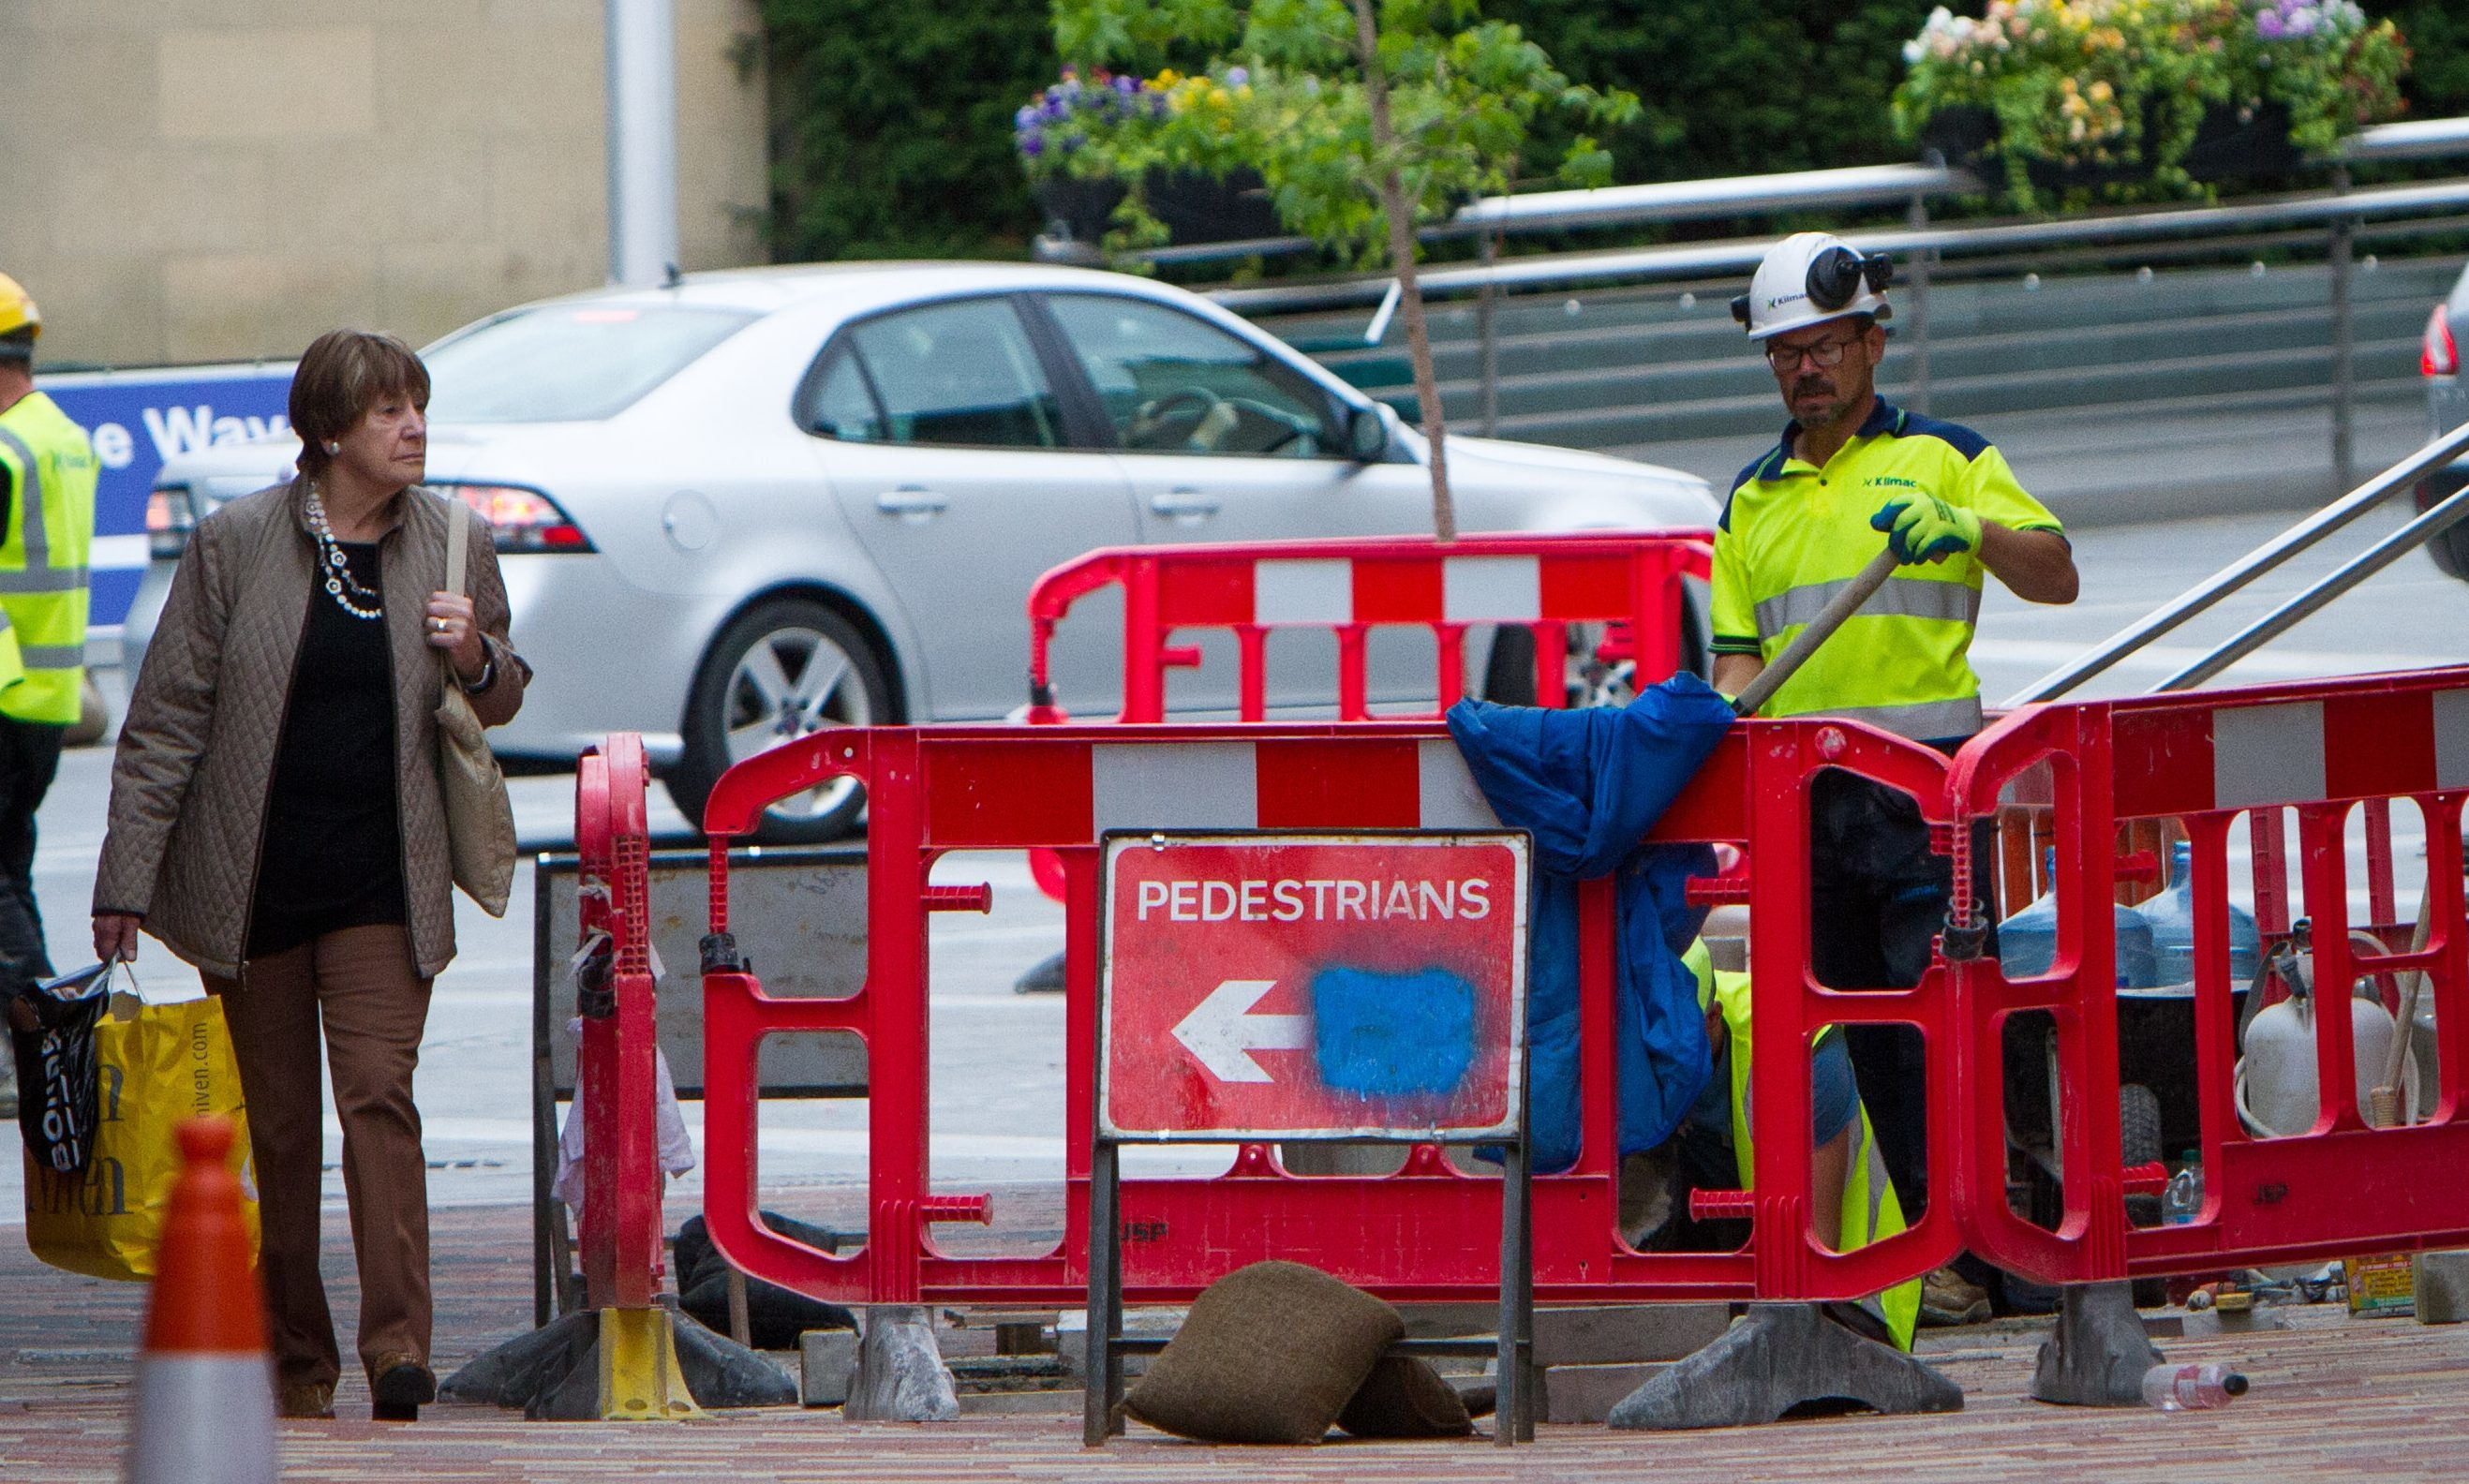 Work being carried out at the scene: Skinnergate, Perth.